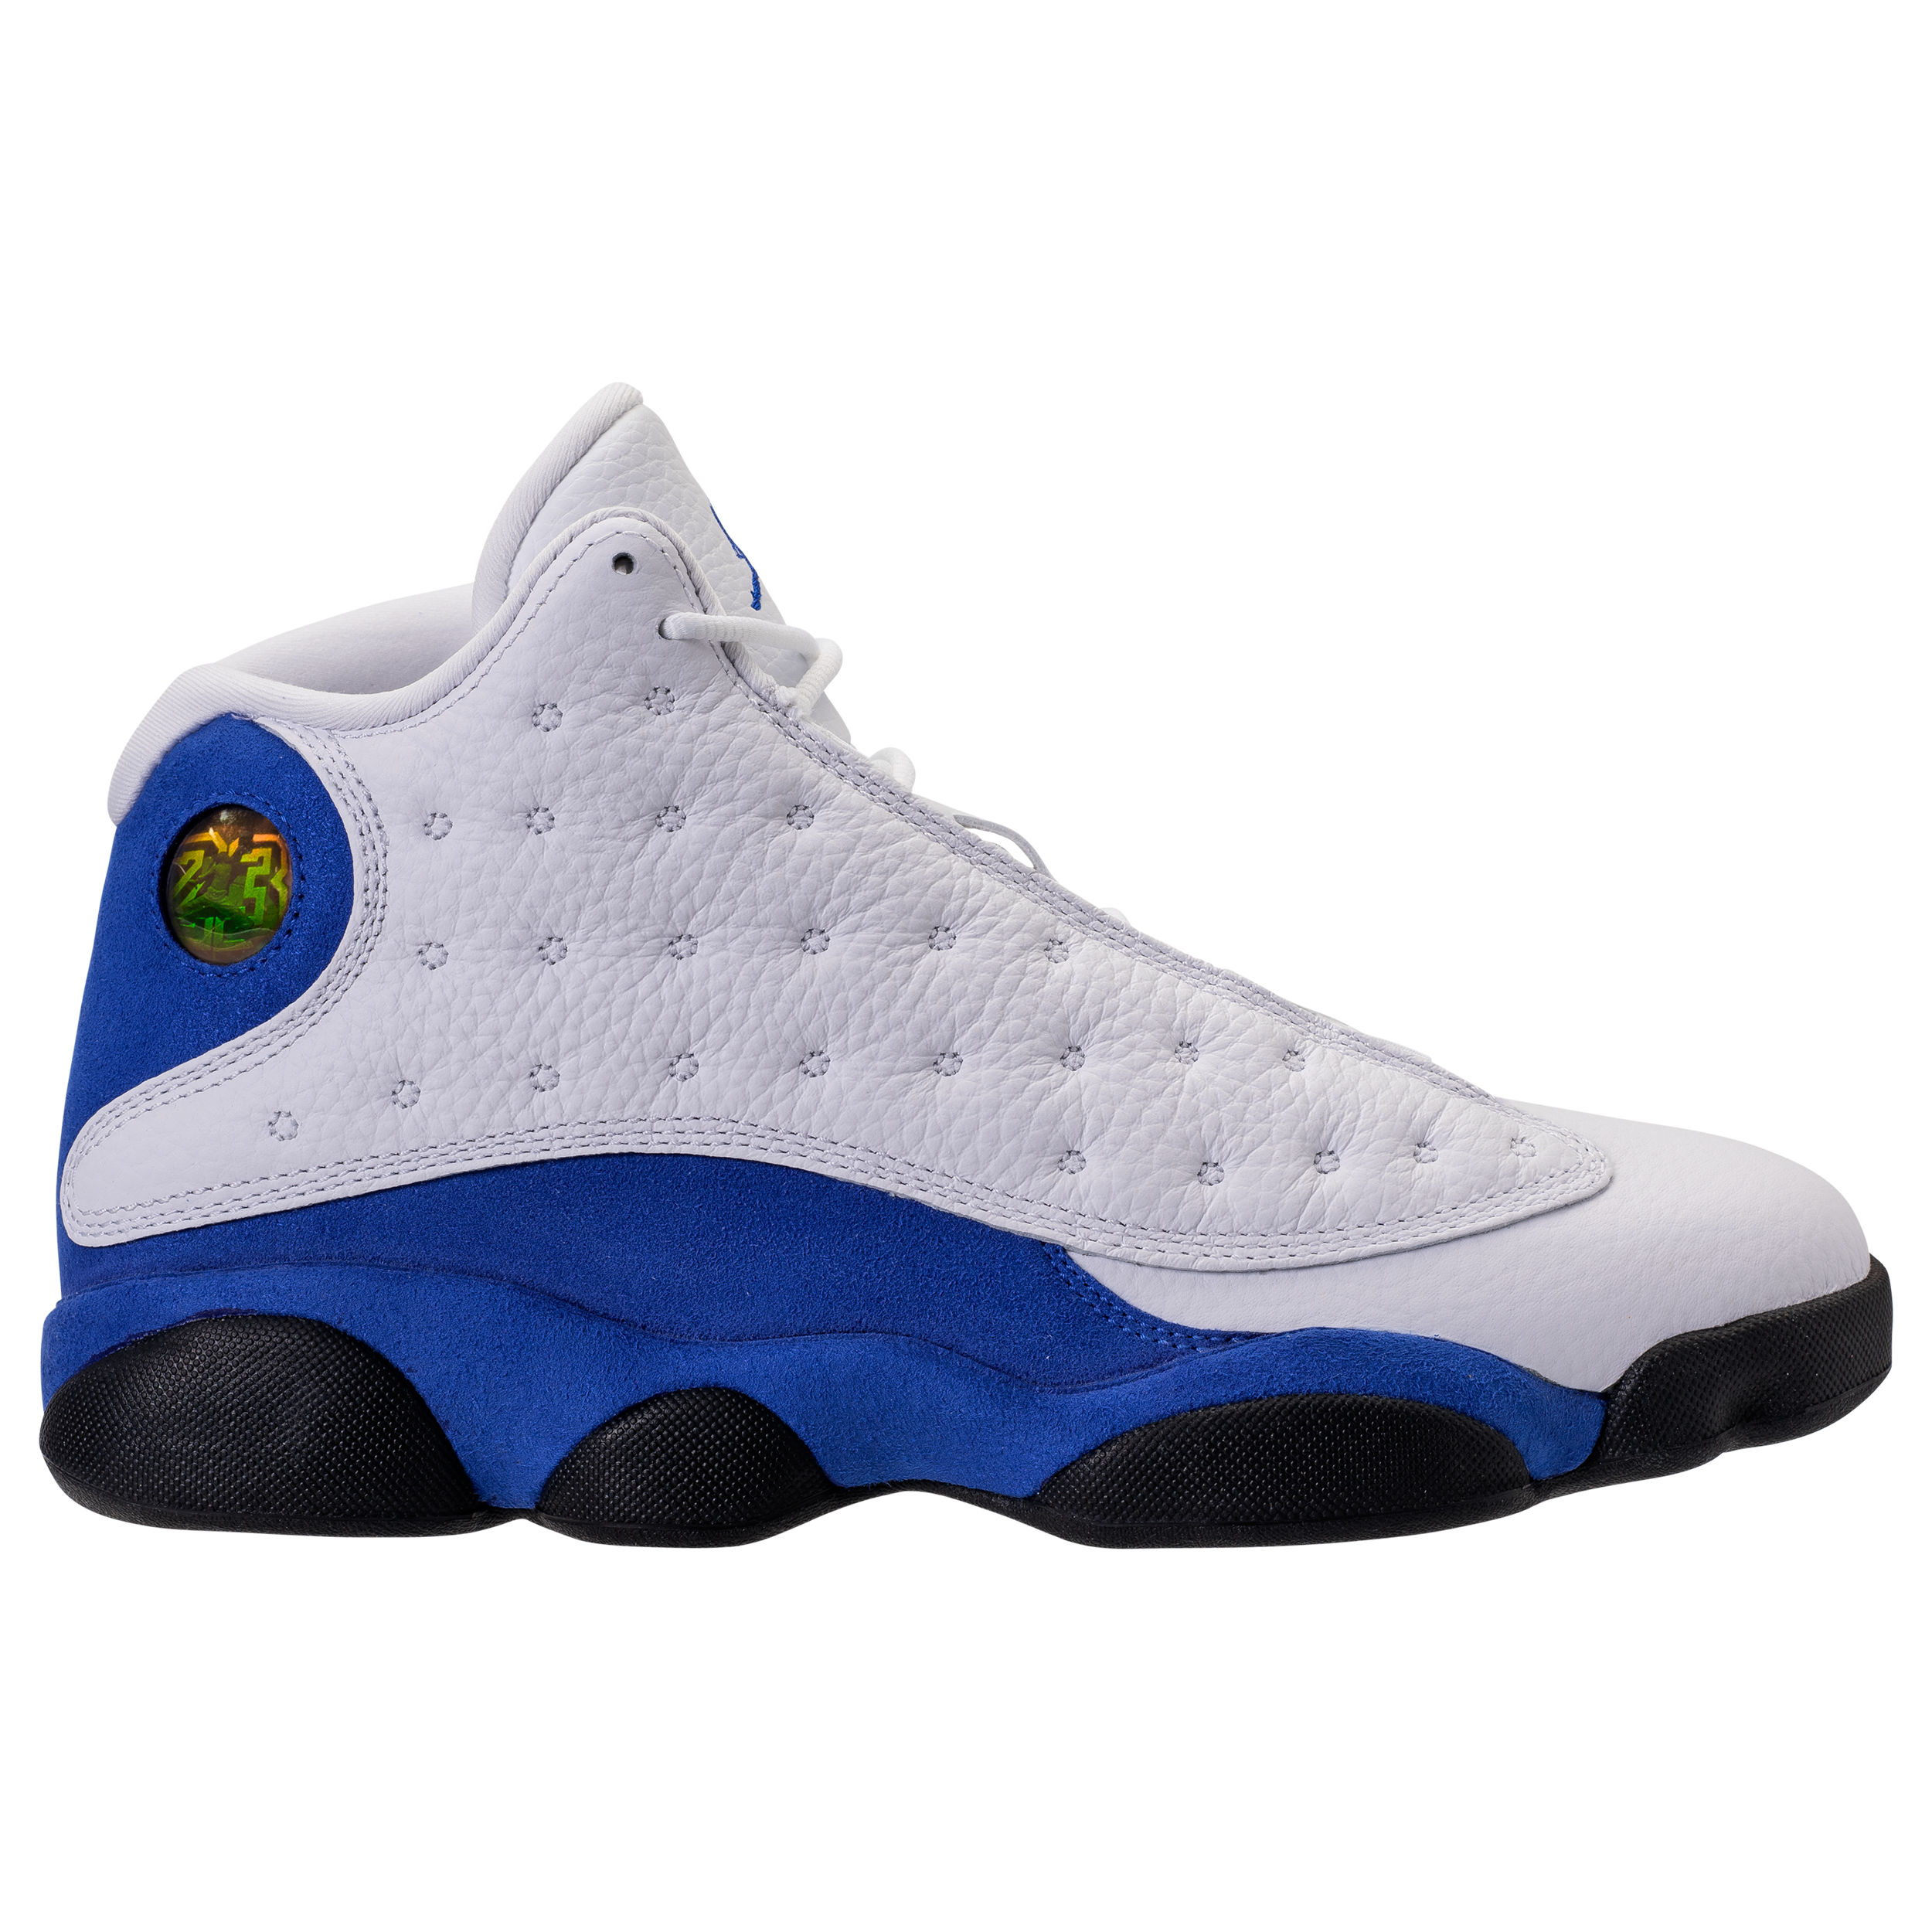 425dbdc00ca air jordan 13 hyper royal release date 1 · Jordan Brand / Kicks On Court /  Retro Lifestyle ...